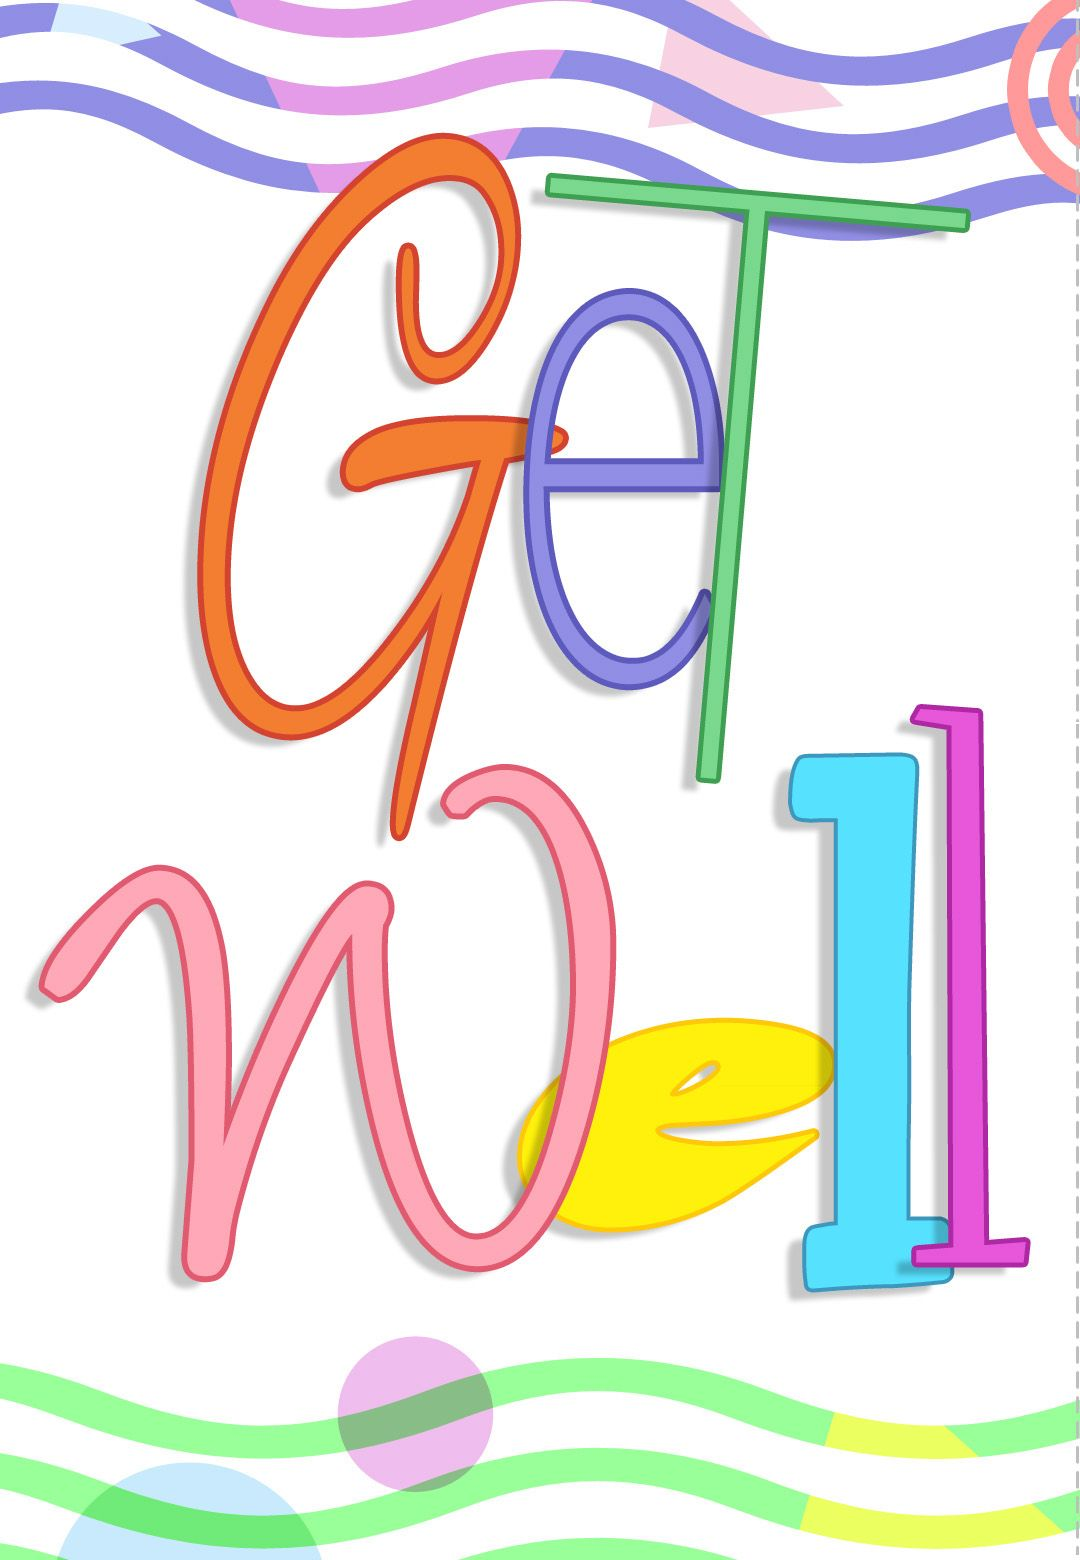 Free printable get well greeting card get well pinterest free printable get well greeting card get well pinterest free printable and free kristyandbryce Choice Image